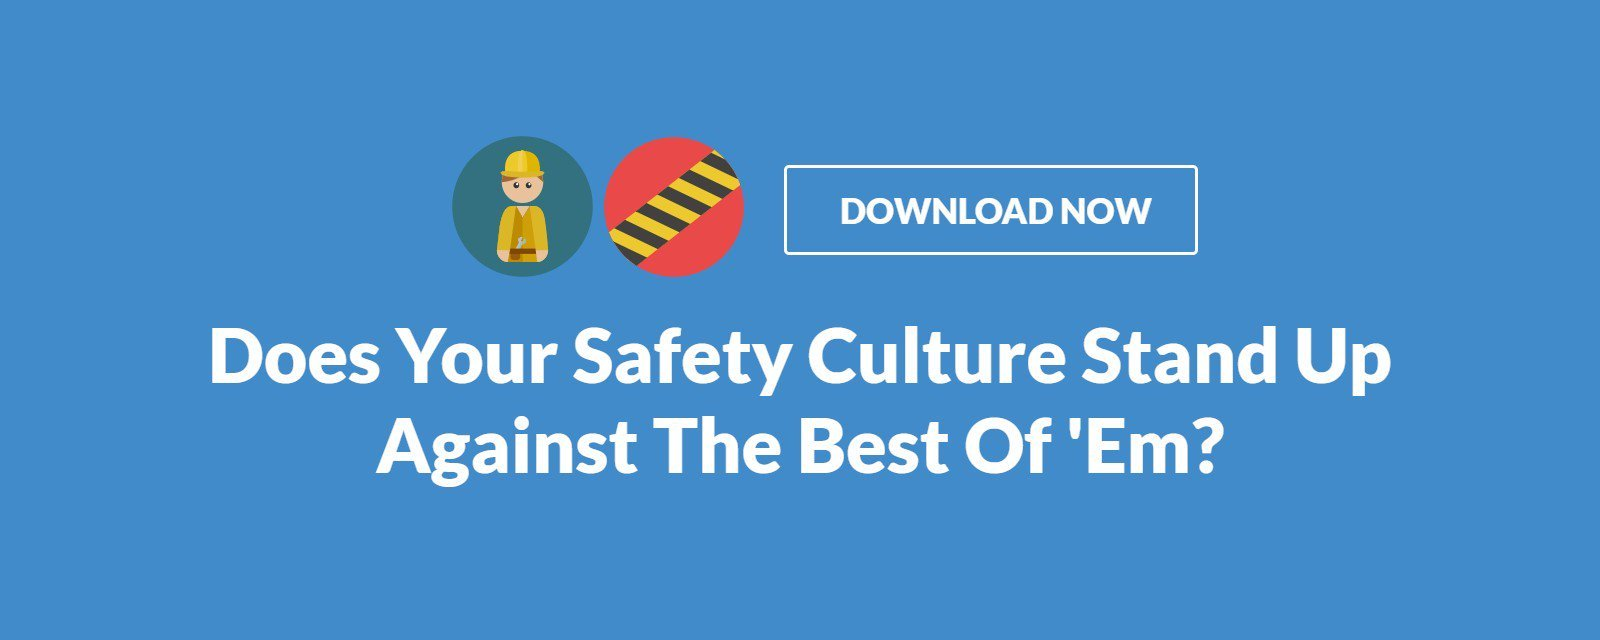 Does Your Safety Culture Stand Up Against The Best Of 'Em?